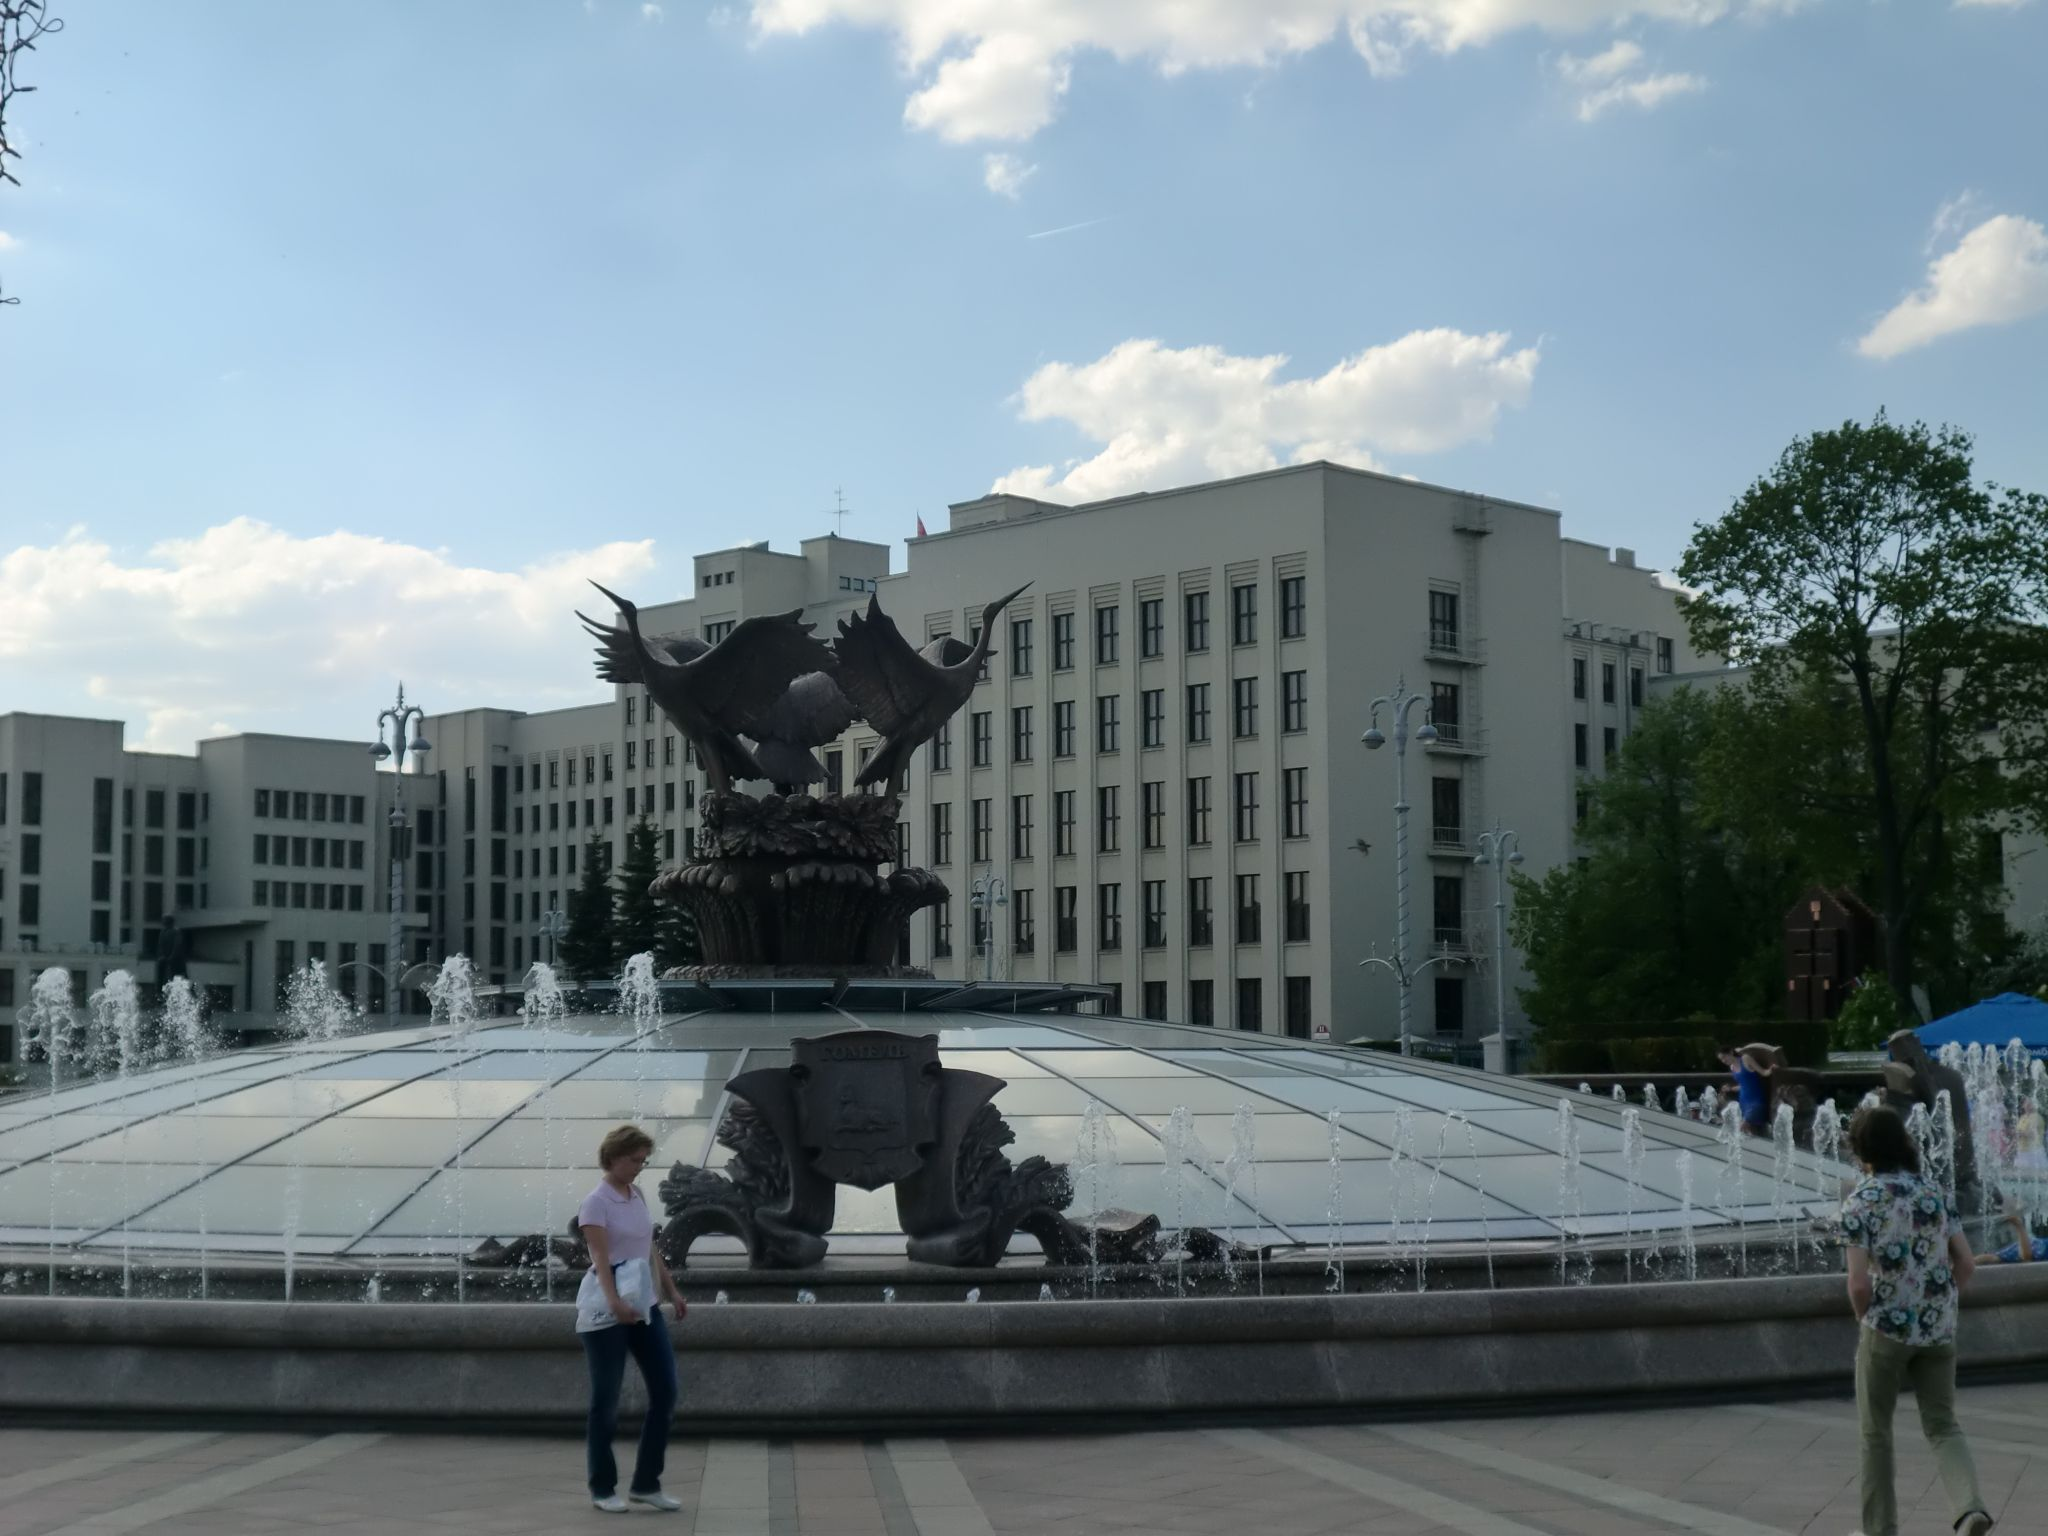 Minsk monument - Minsk, 1 amazing city you have to see